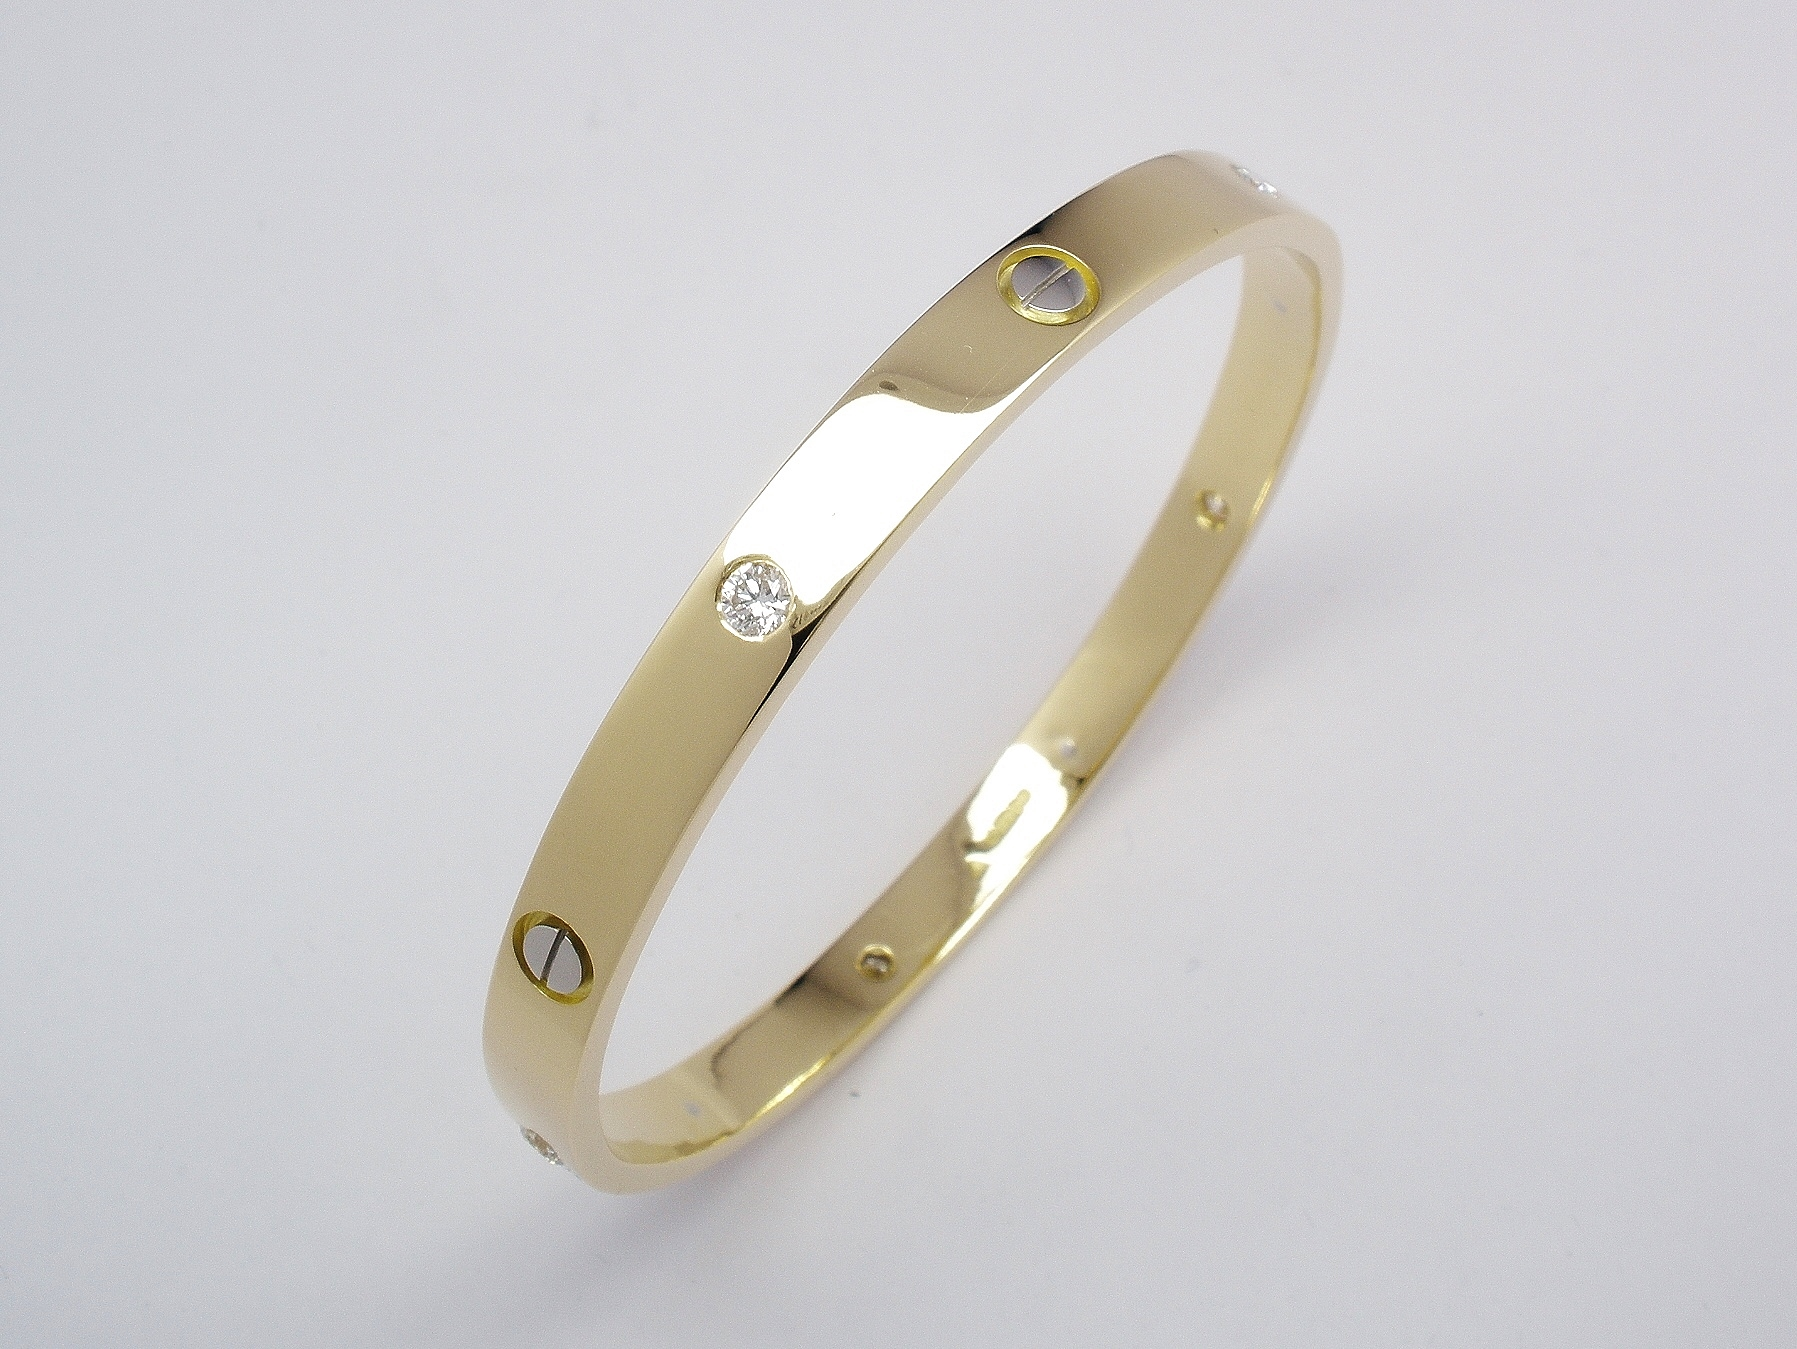 18ct. yellow gold solid bangle with 5 round brilliant cut diamonds flush set and 5 platinum screw heads inlayed.